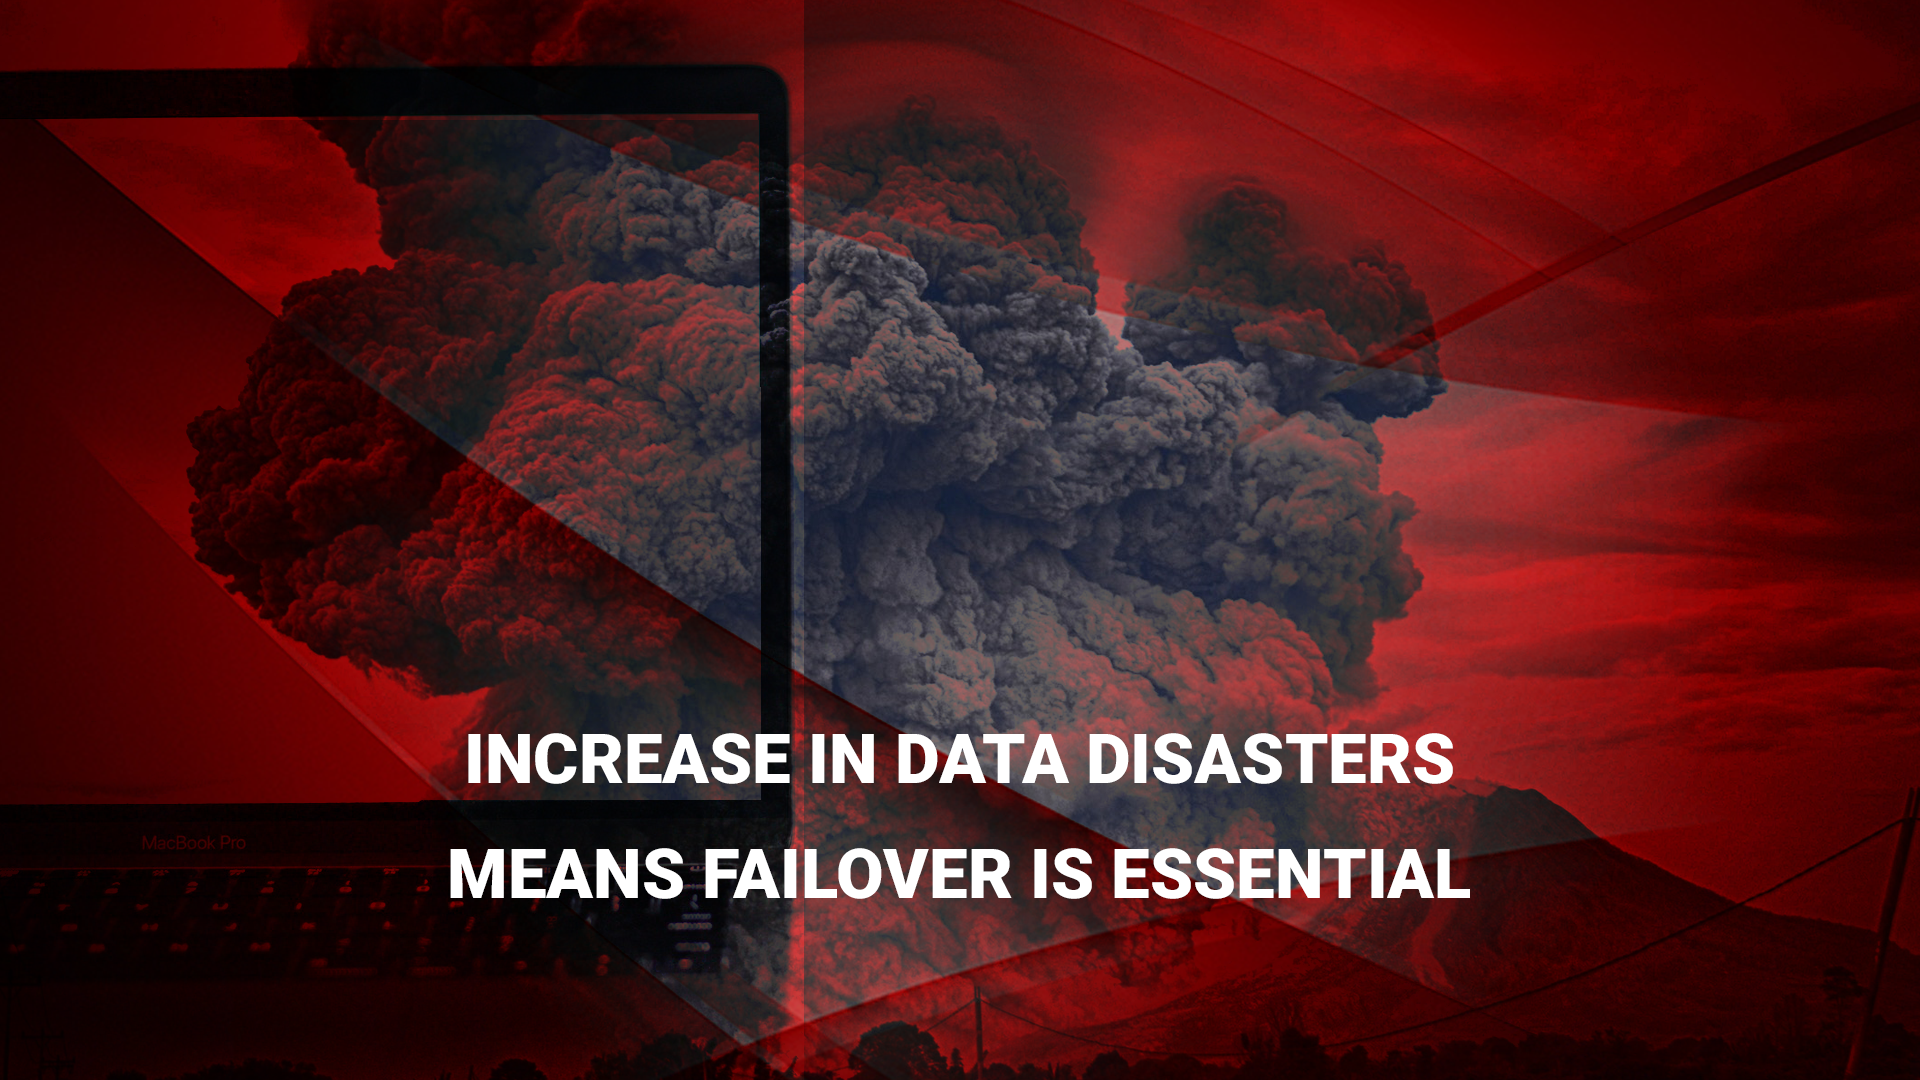 Increase in Data Disasters Means Failover is Essential